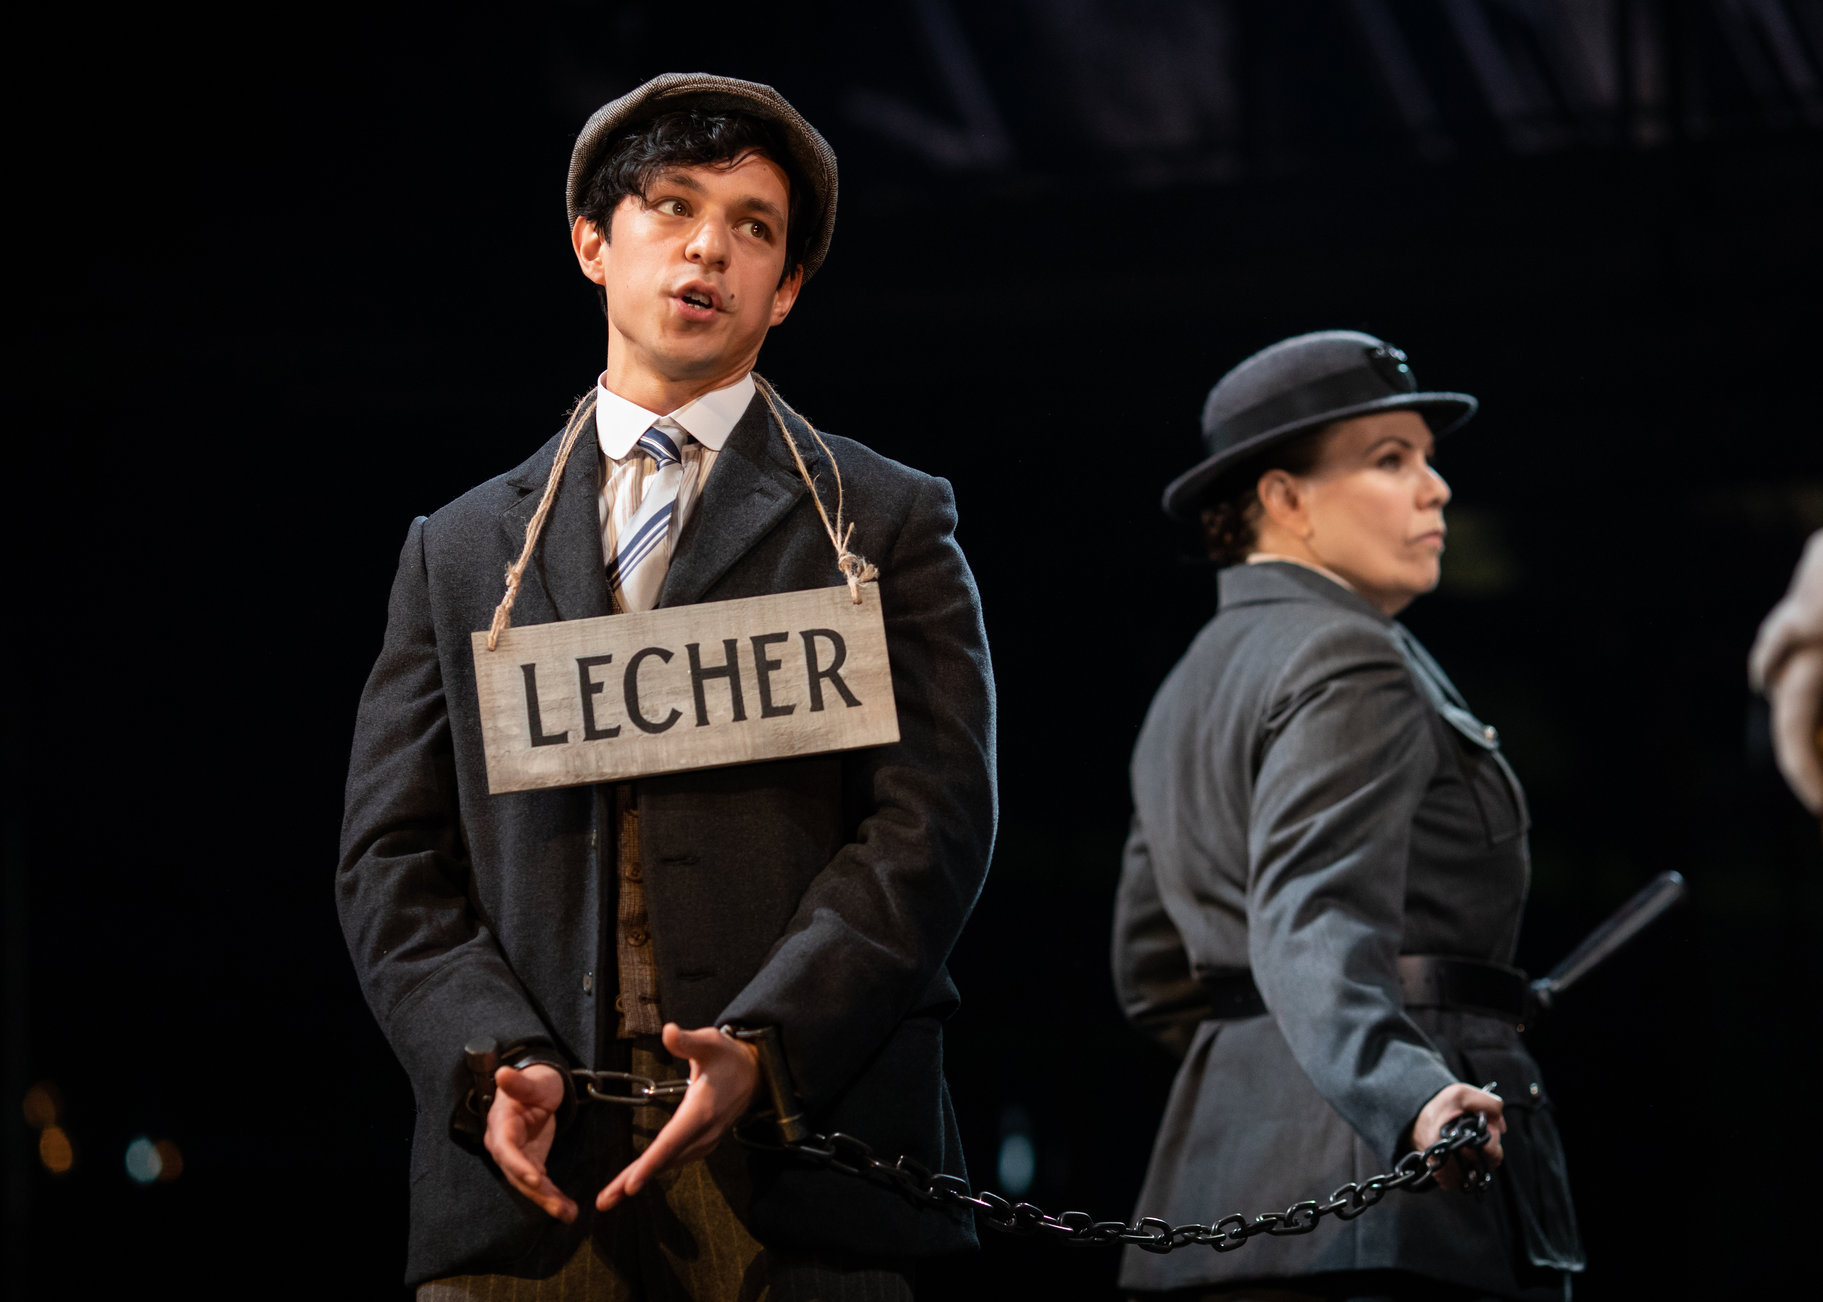 A man in chains with a sign around his neck saying 'Lecher'.